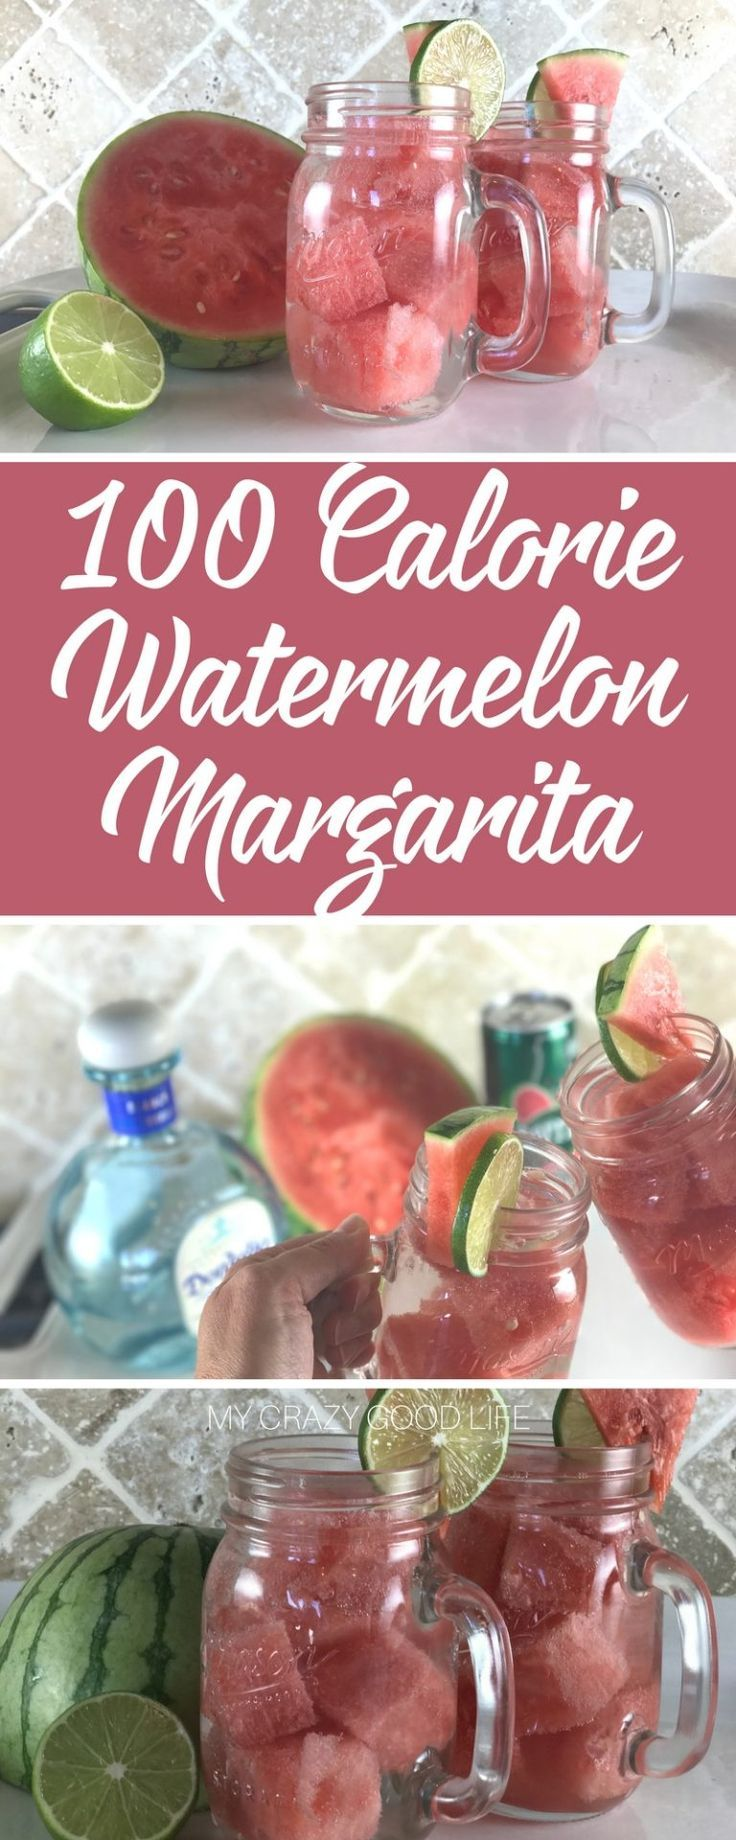 A 100 calorie watermelon margarita is crisp, refreshing, and easy to make. It's great after a long day, also perfect for those poolside afternoons and more! | 21 Day Fix Margarita